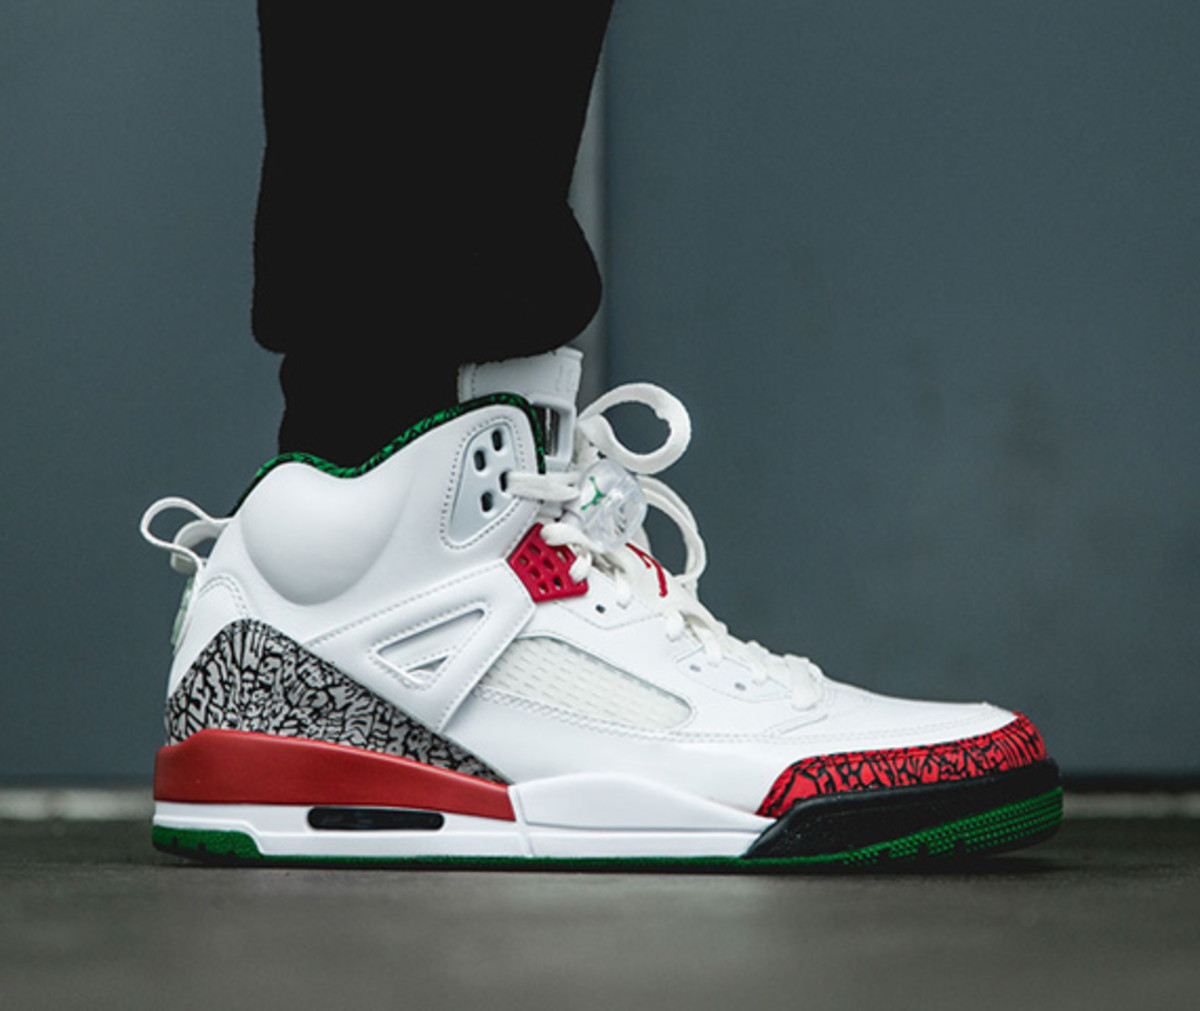 quality design 29aff 1305c A tribute to director Spike Lee s long association with Jordan Brand and  his groundbreaking 40 Acres and a Mule production company, the Jordan  Spizike ...